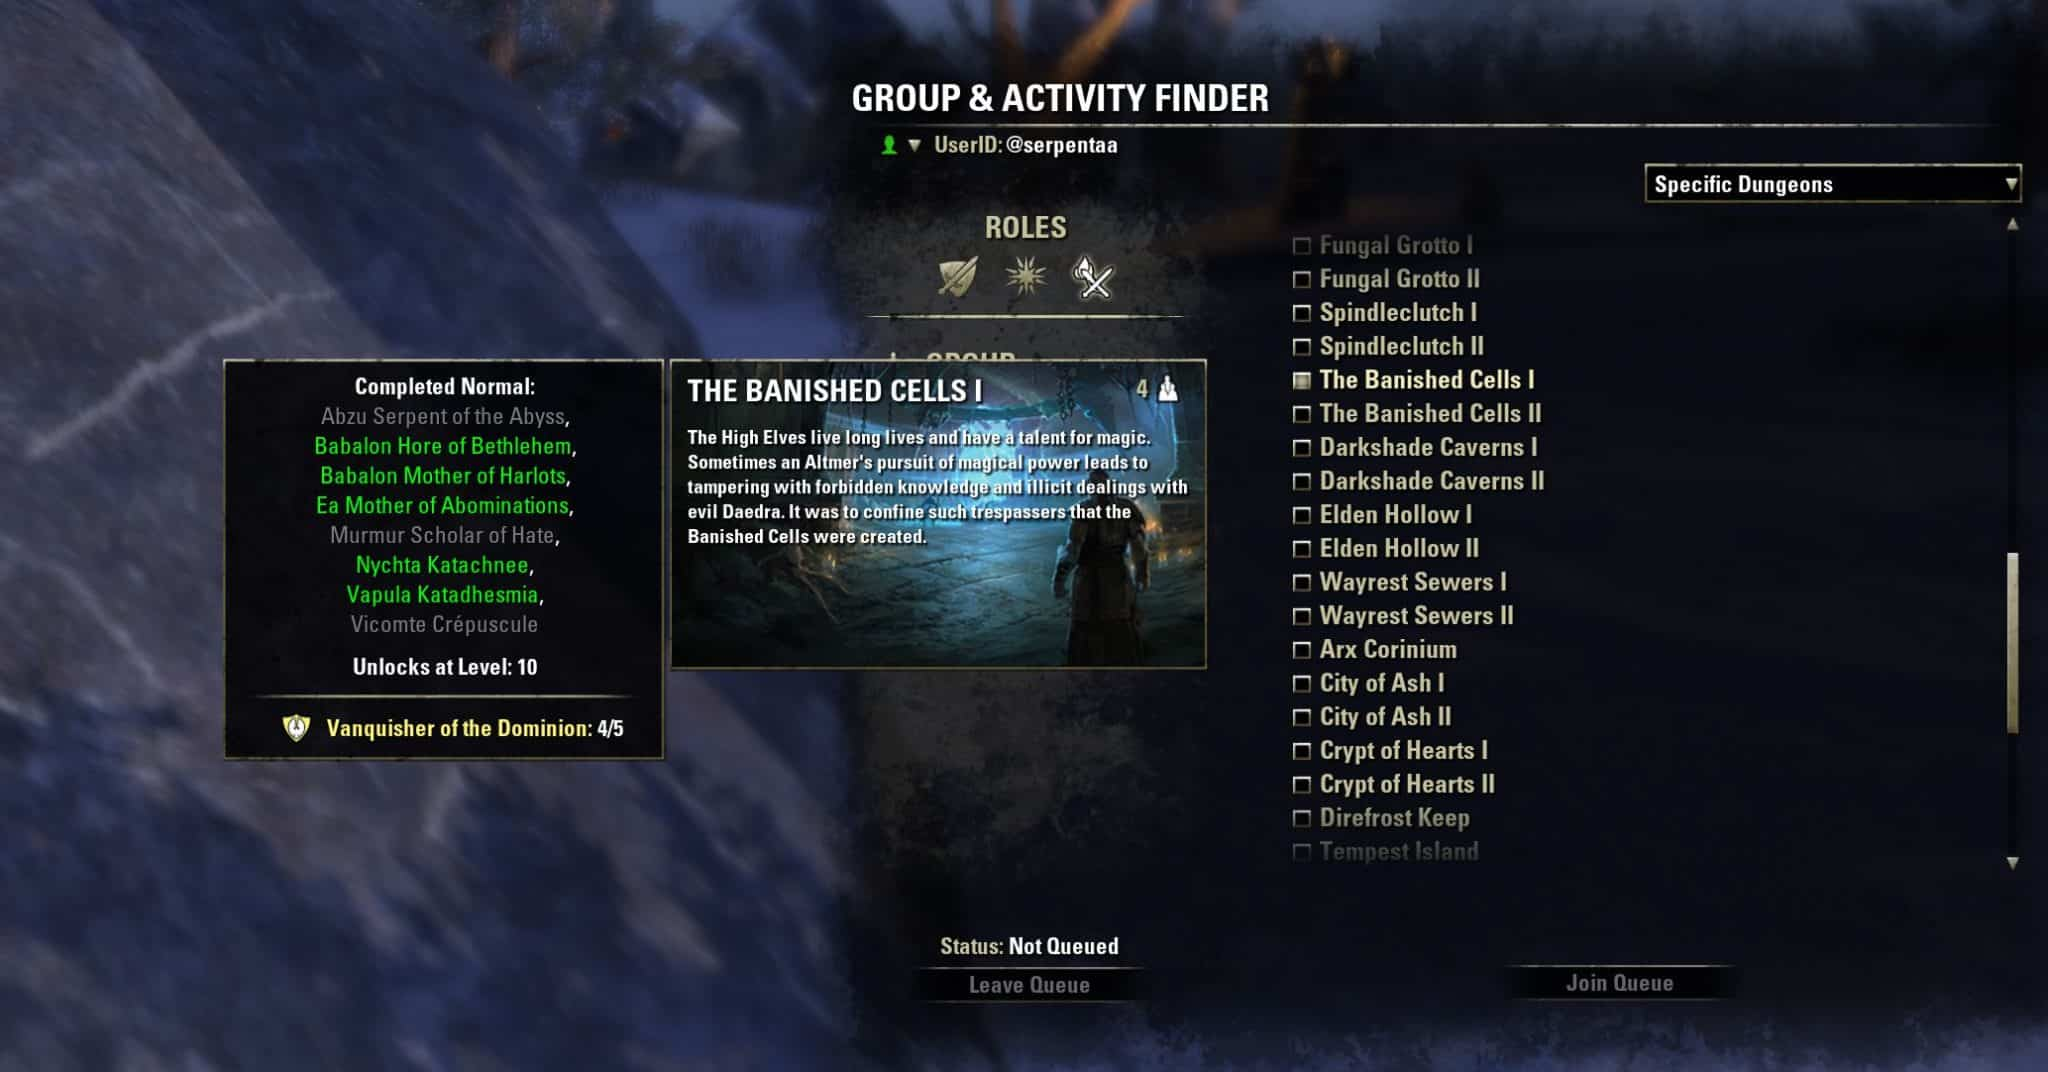 Dungeon Tracker by Phinix, The Elder Scrolls Online Addon (image by @serpentaa)